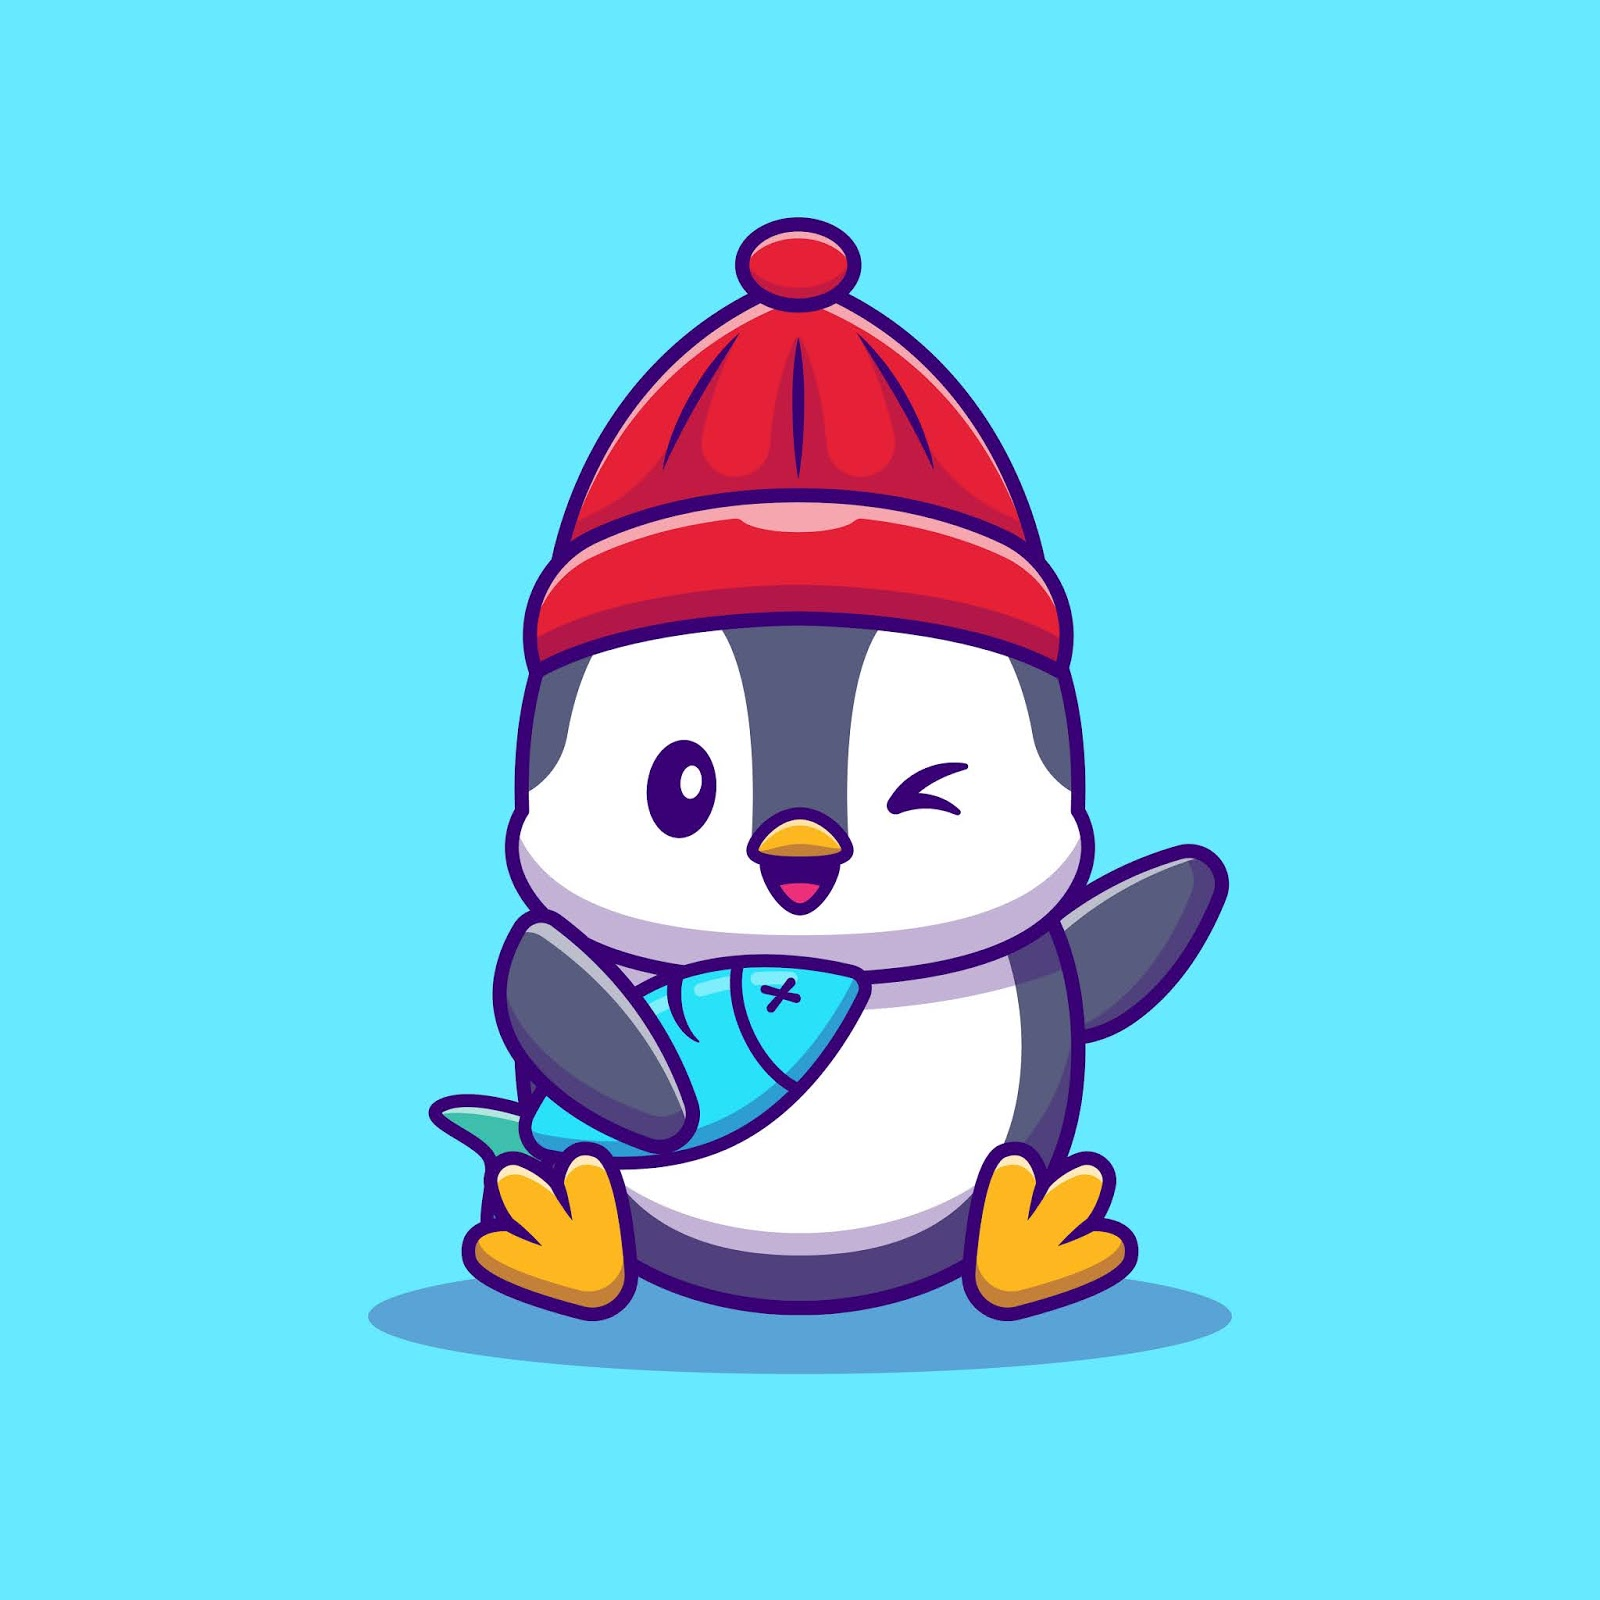 Cute Penguin With Fish Cartoon Vector Illustration Animal Wildlife Concept Isolated Vector Flat Cartoon Style Free Download Vector CDR, AI, EPS and PNG Formats